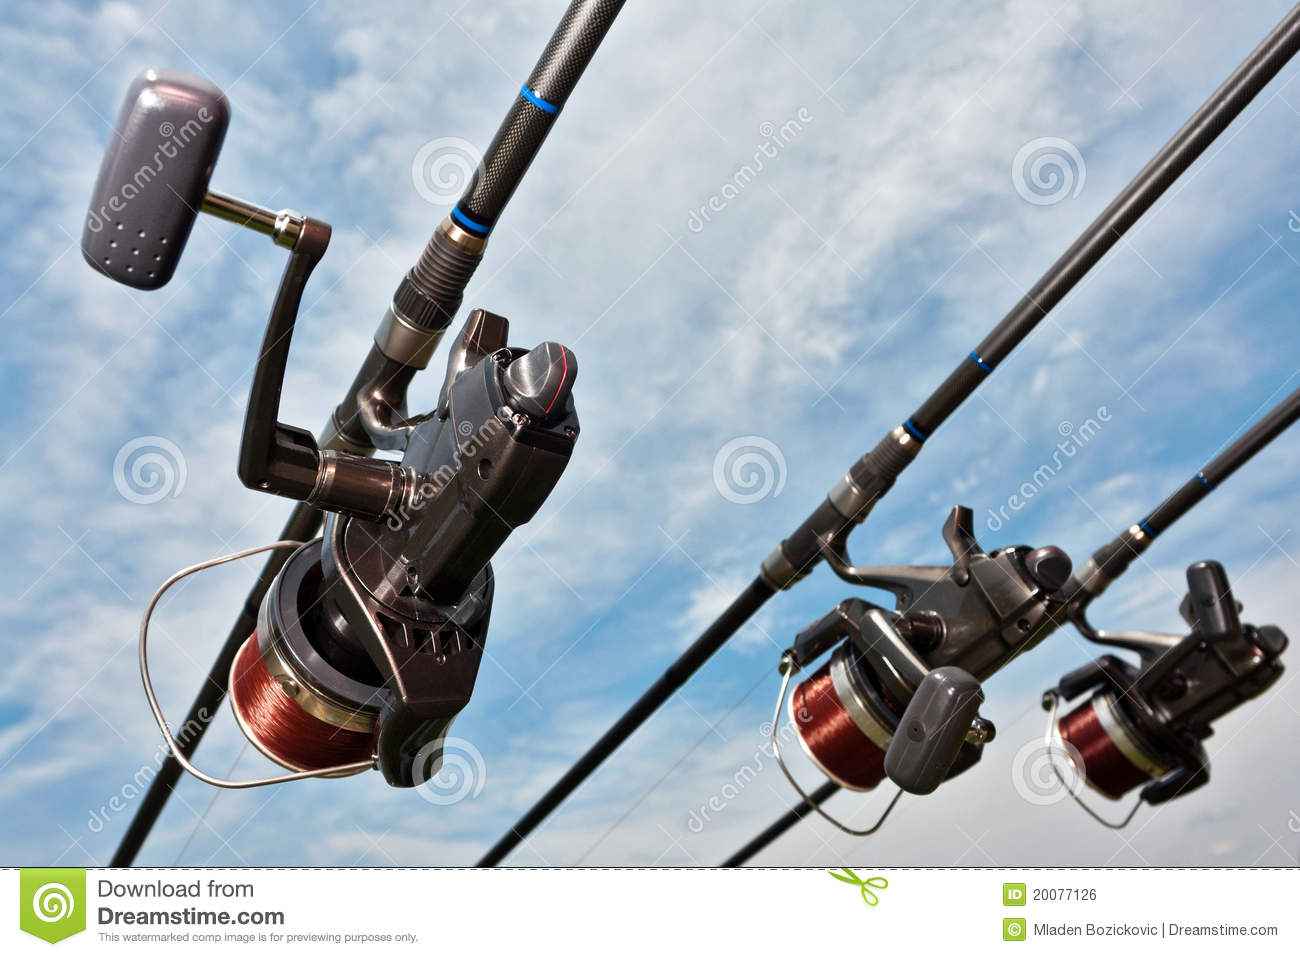 Fishing equipment stock photo image of reels nylon for How to get free fishing gear